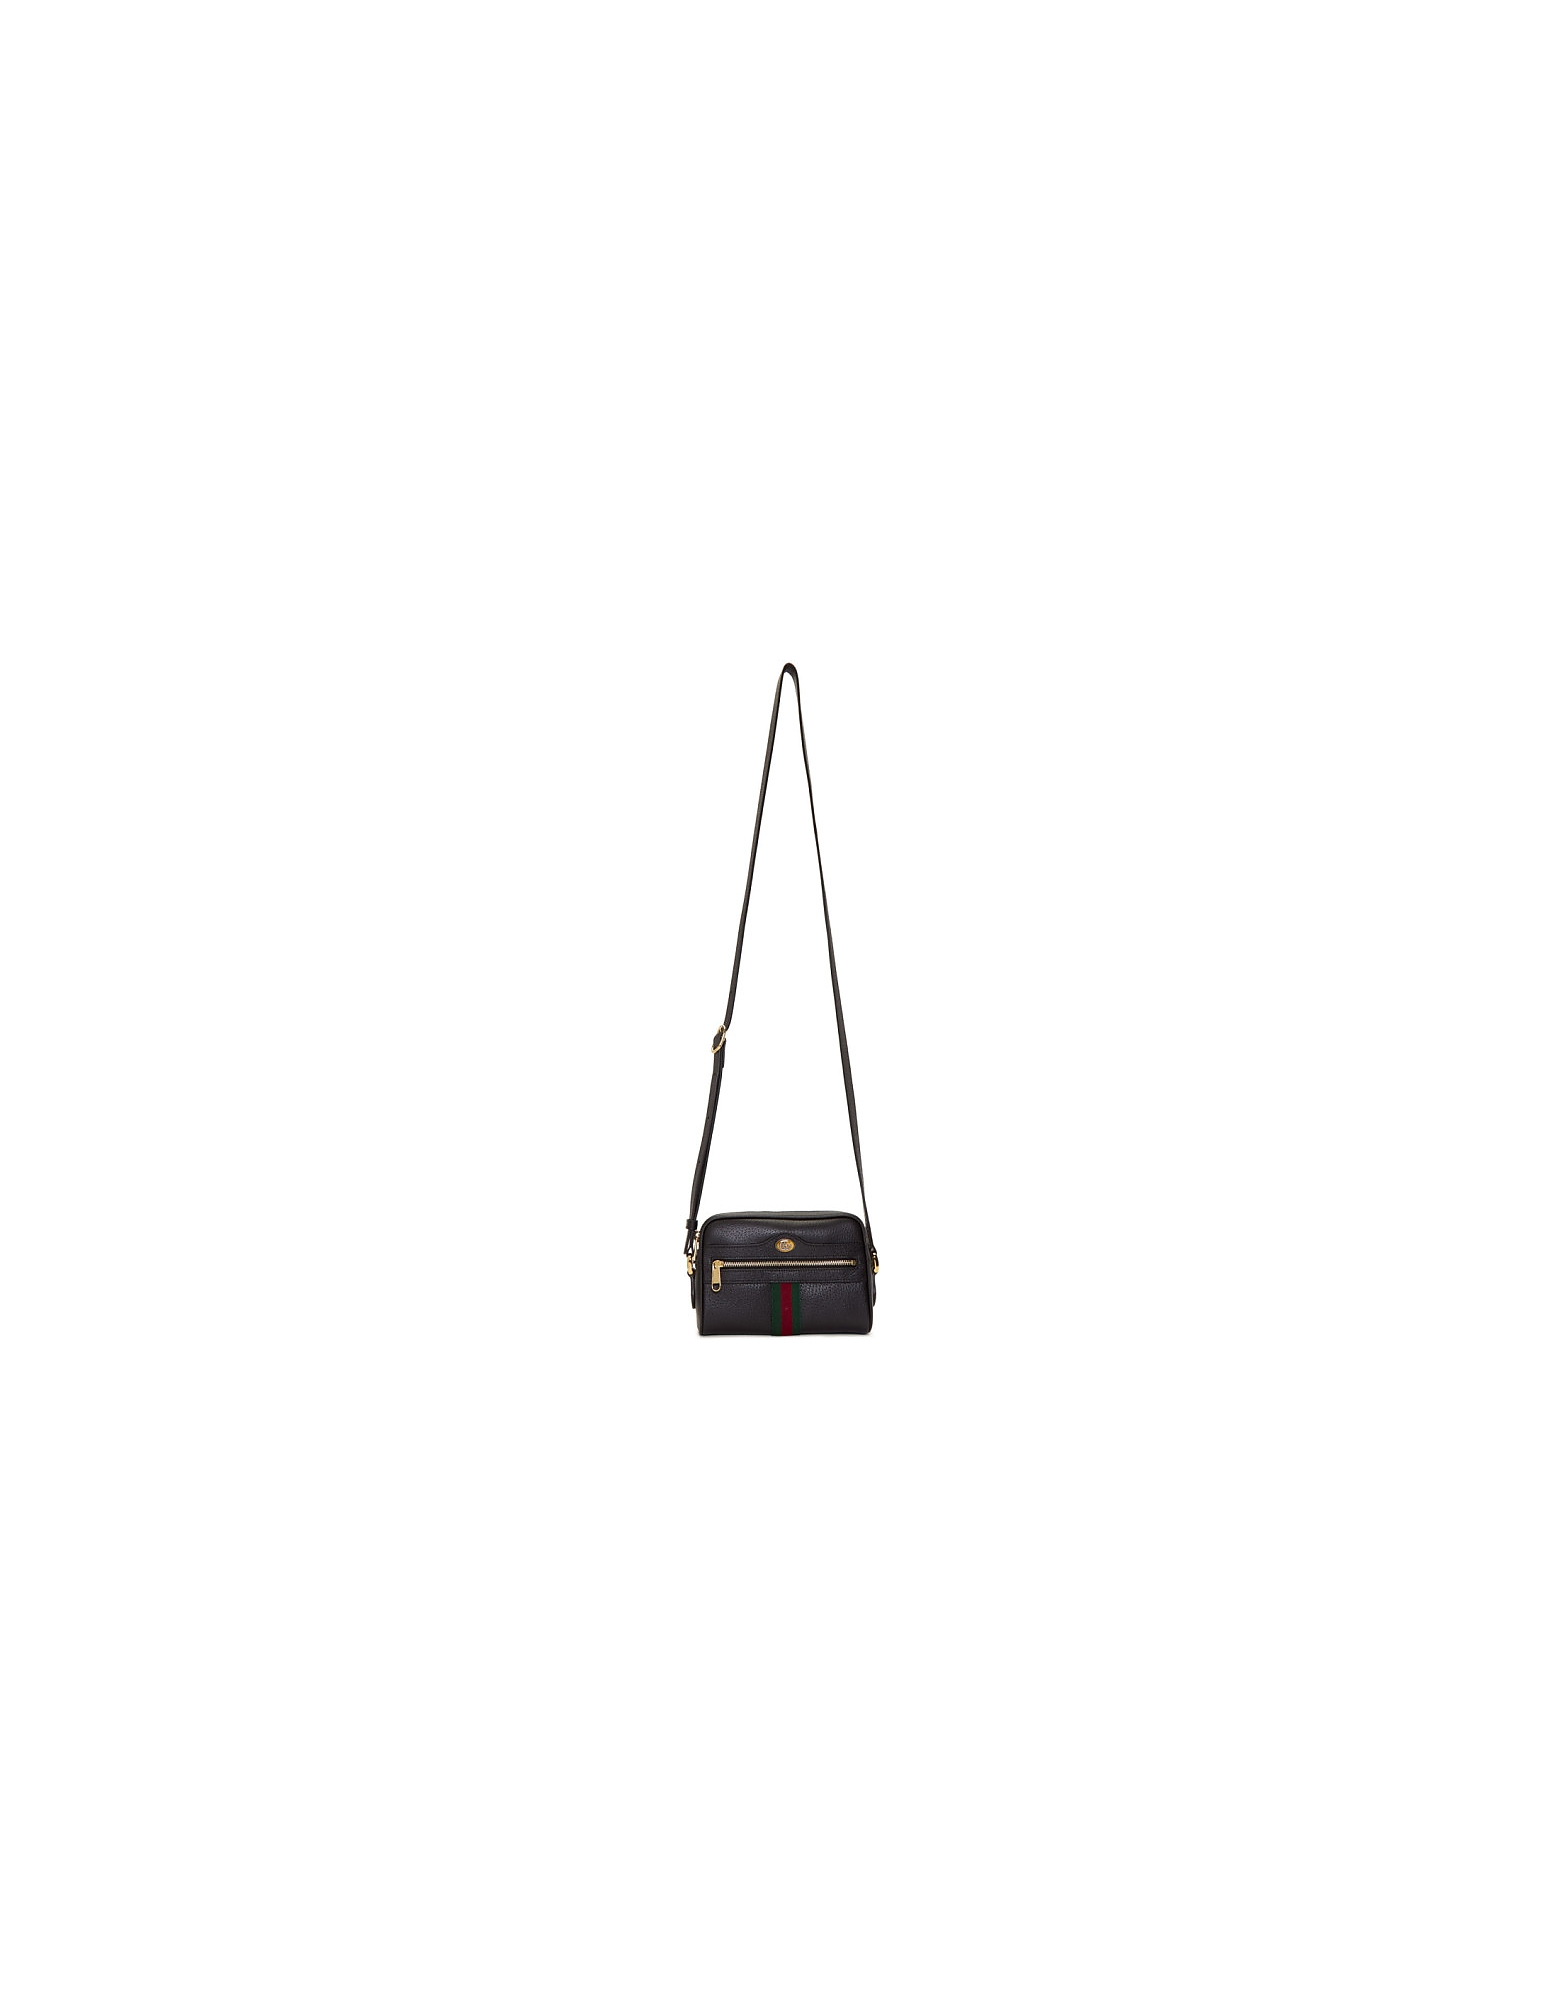 Gucci Designer Handbags, Black Mini Ophidia Bag